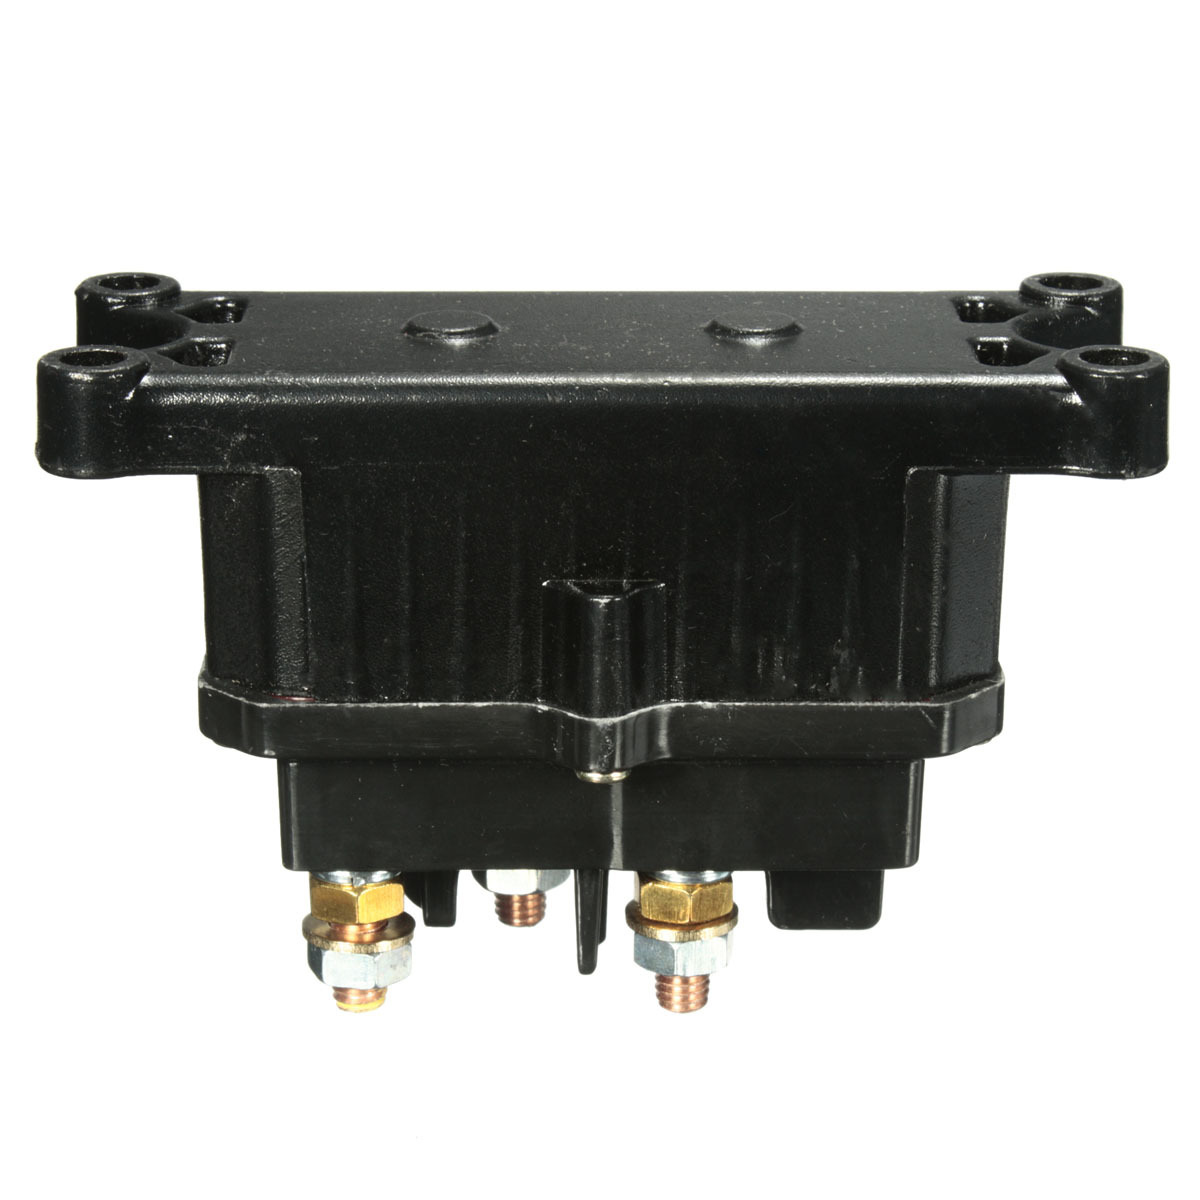 universal 12v solenoid relay contactor winch rocker thumb switch truck atv utv ebay. Black Bedroom Furniture Sets. Home Design Ideas